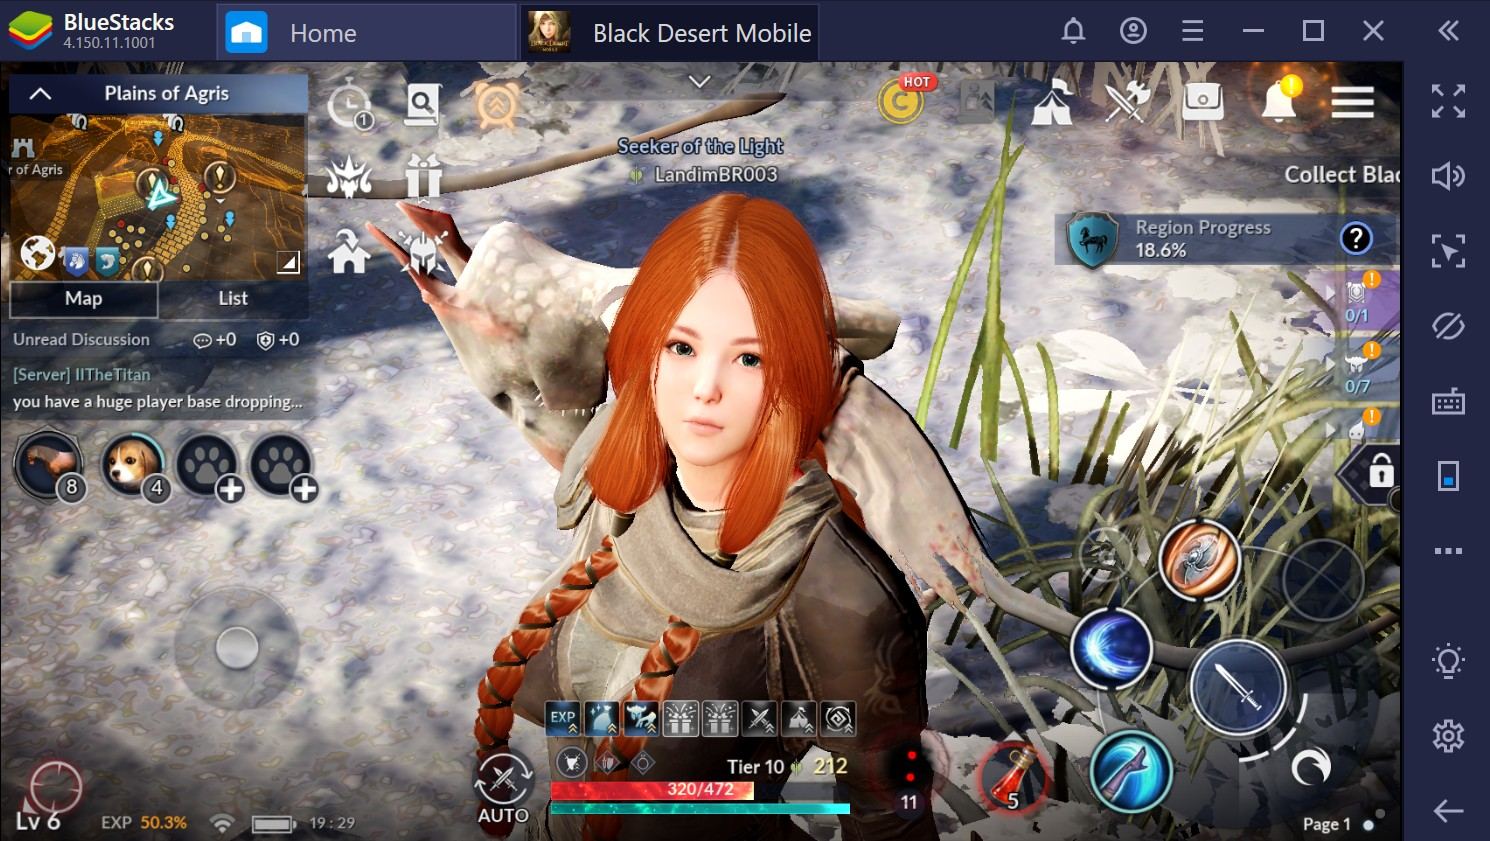 Como jogar Black Desert Mobile no PC com o BlueStacks